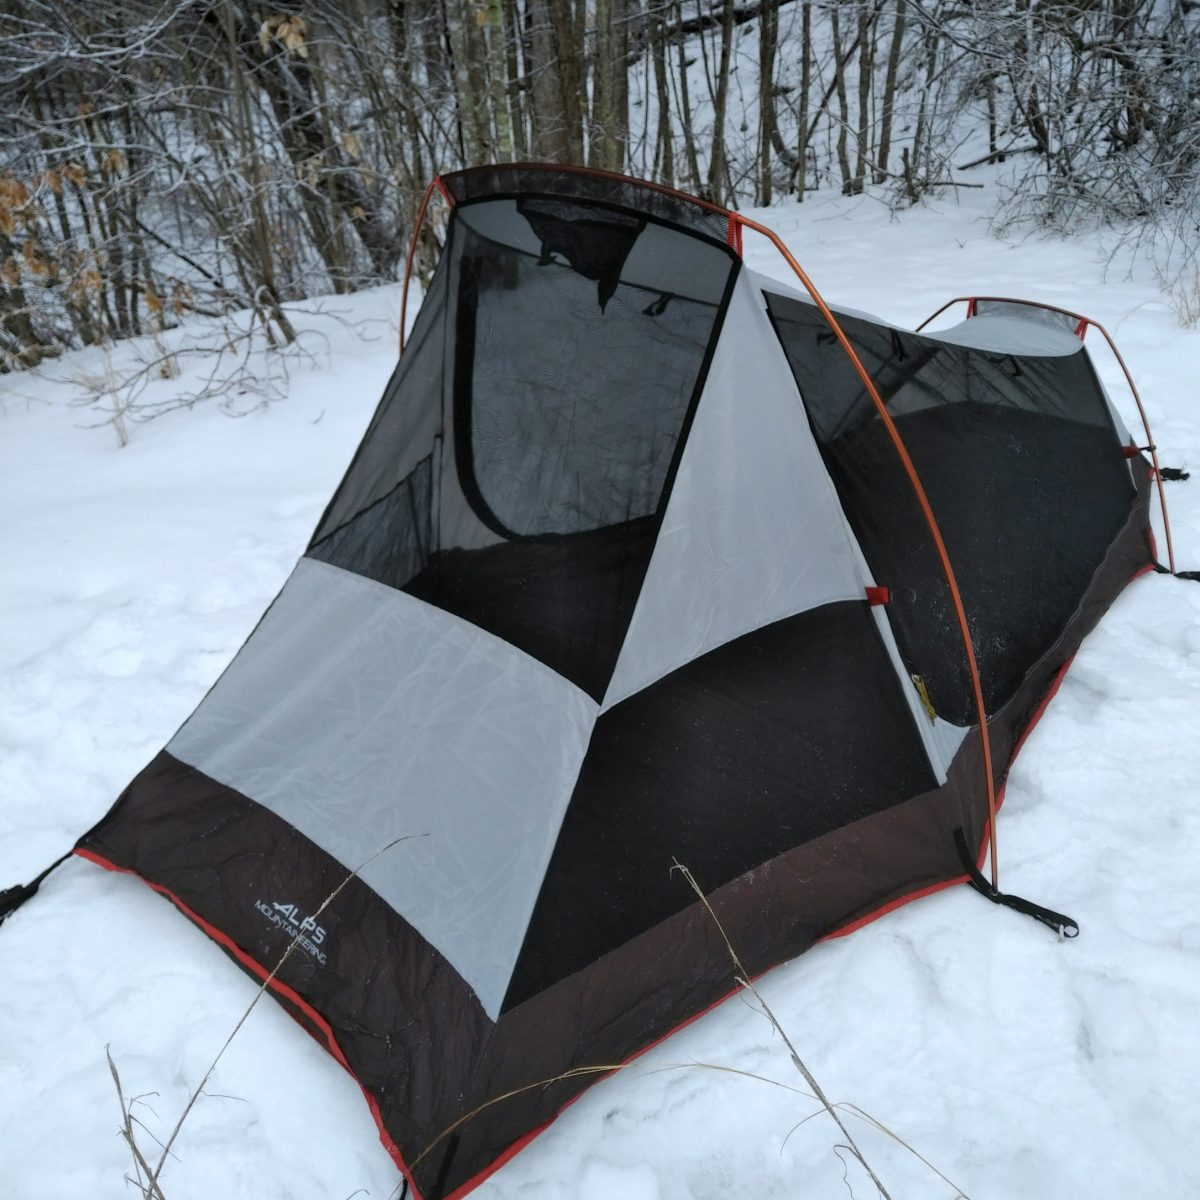 The Path Less Traveled #004 – ALPS Mountaineering Mystique 1.5 Tent Review